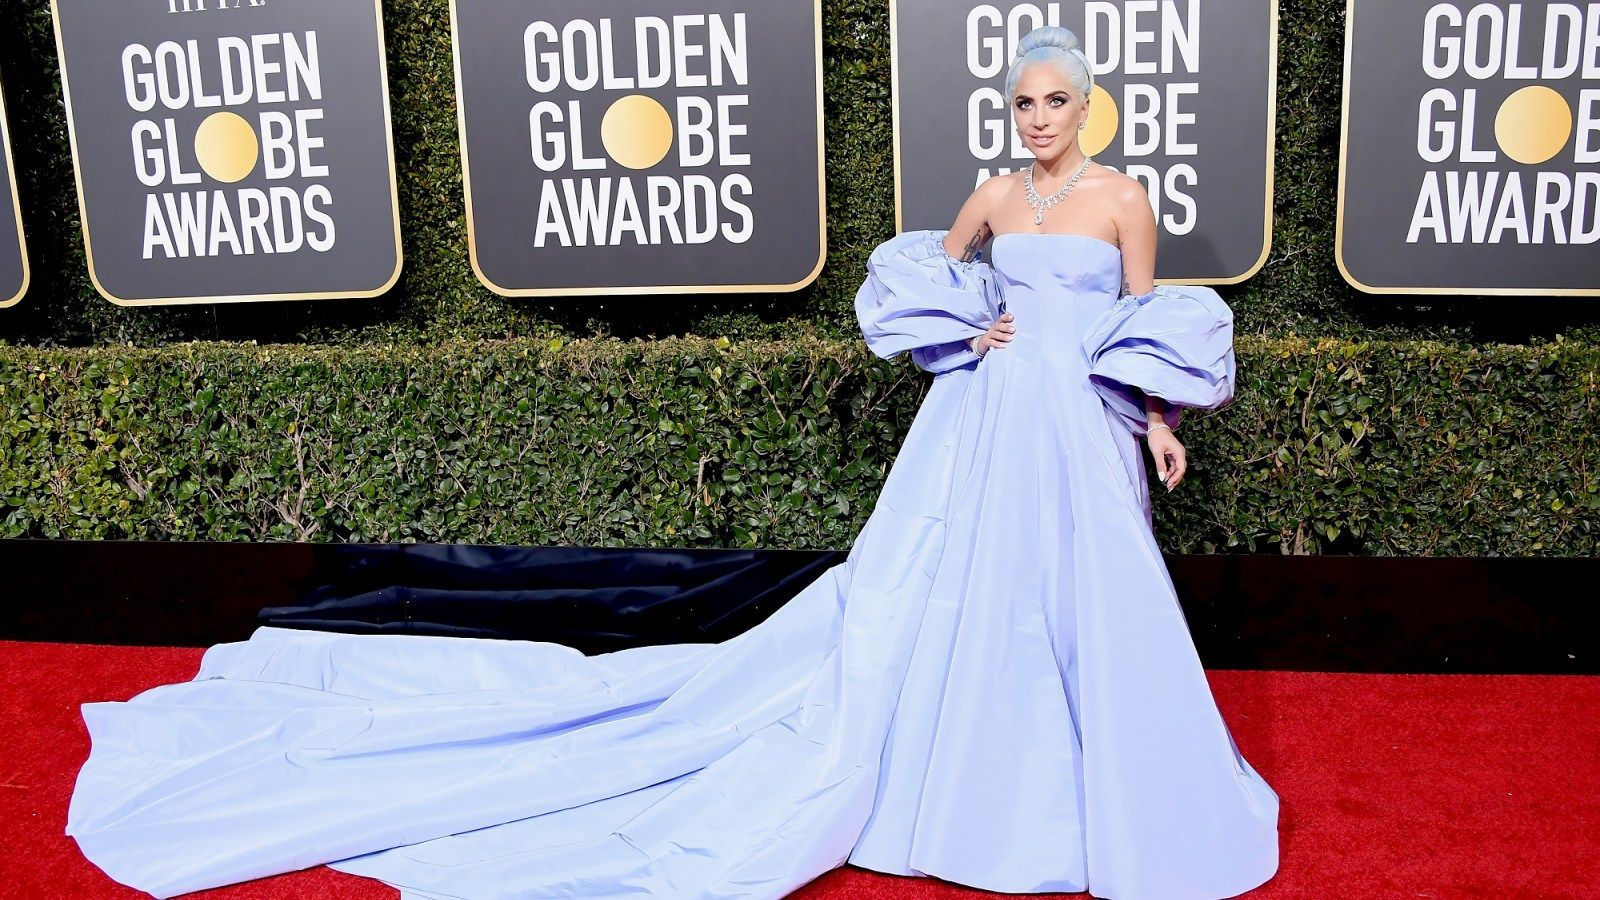 Golden Globes 2019: A Red Carpet Catwalk